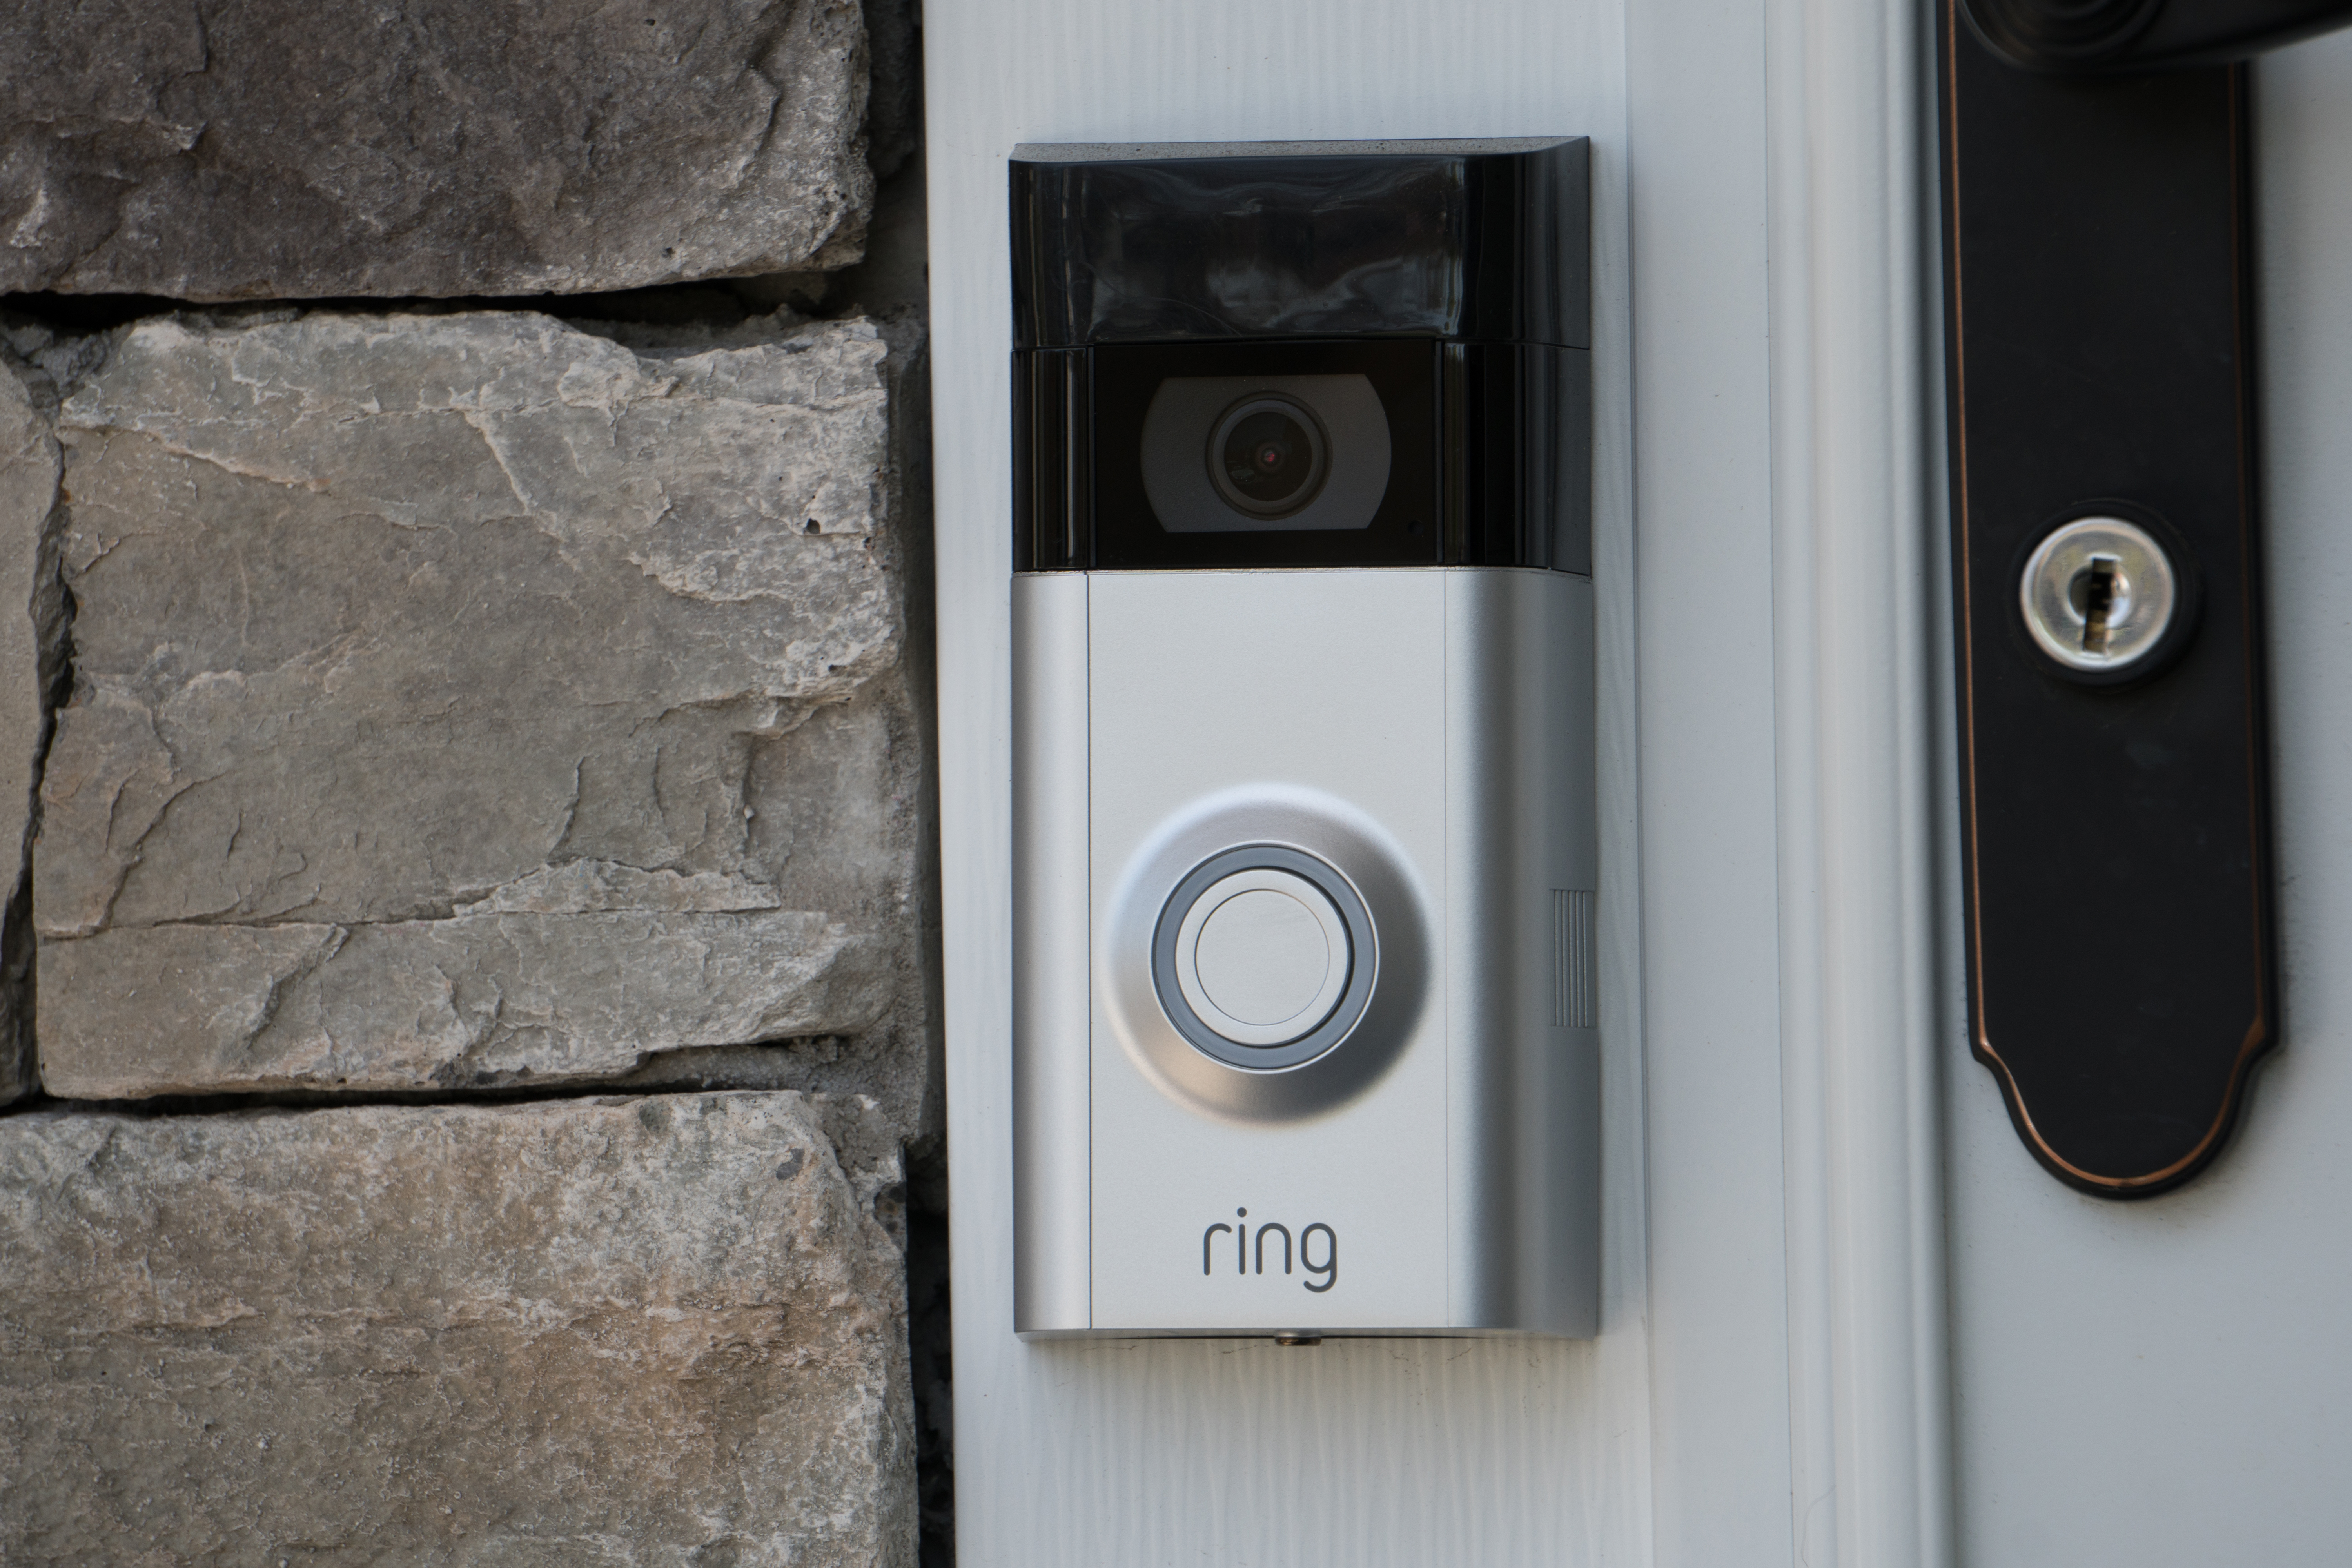 Amazon Ring doorbells make two-factor authentication mandatory